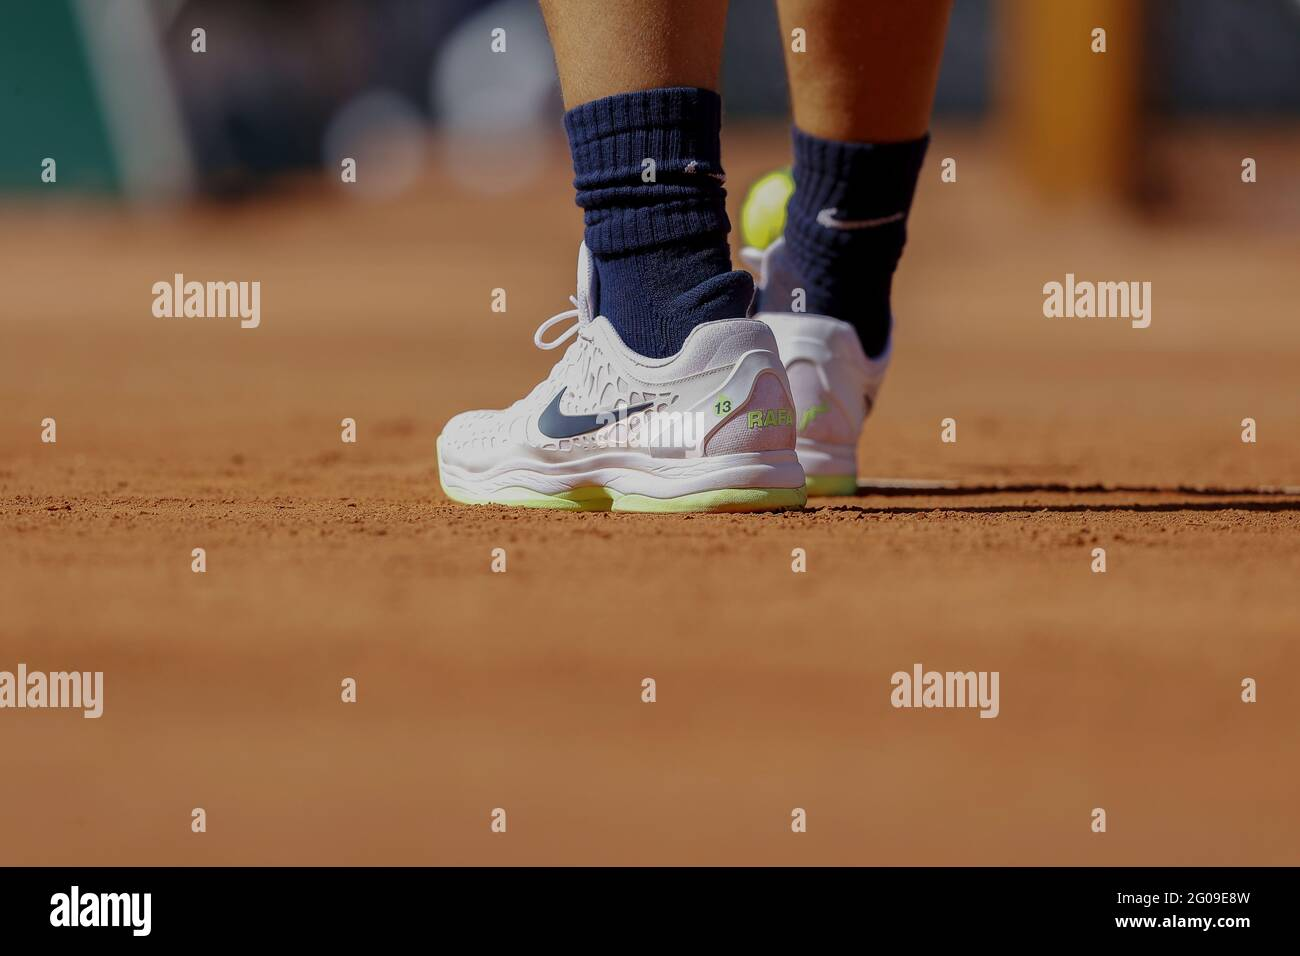 Paris France June 1 2021 Rafael Nadal Of Spain Illustration Shoes With Special Inscription 13 During The First Round Of Roland Garros 2021 Grand Slam Tennis Tournament On June 01 2021 At Roland Garros